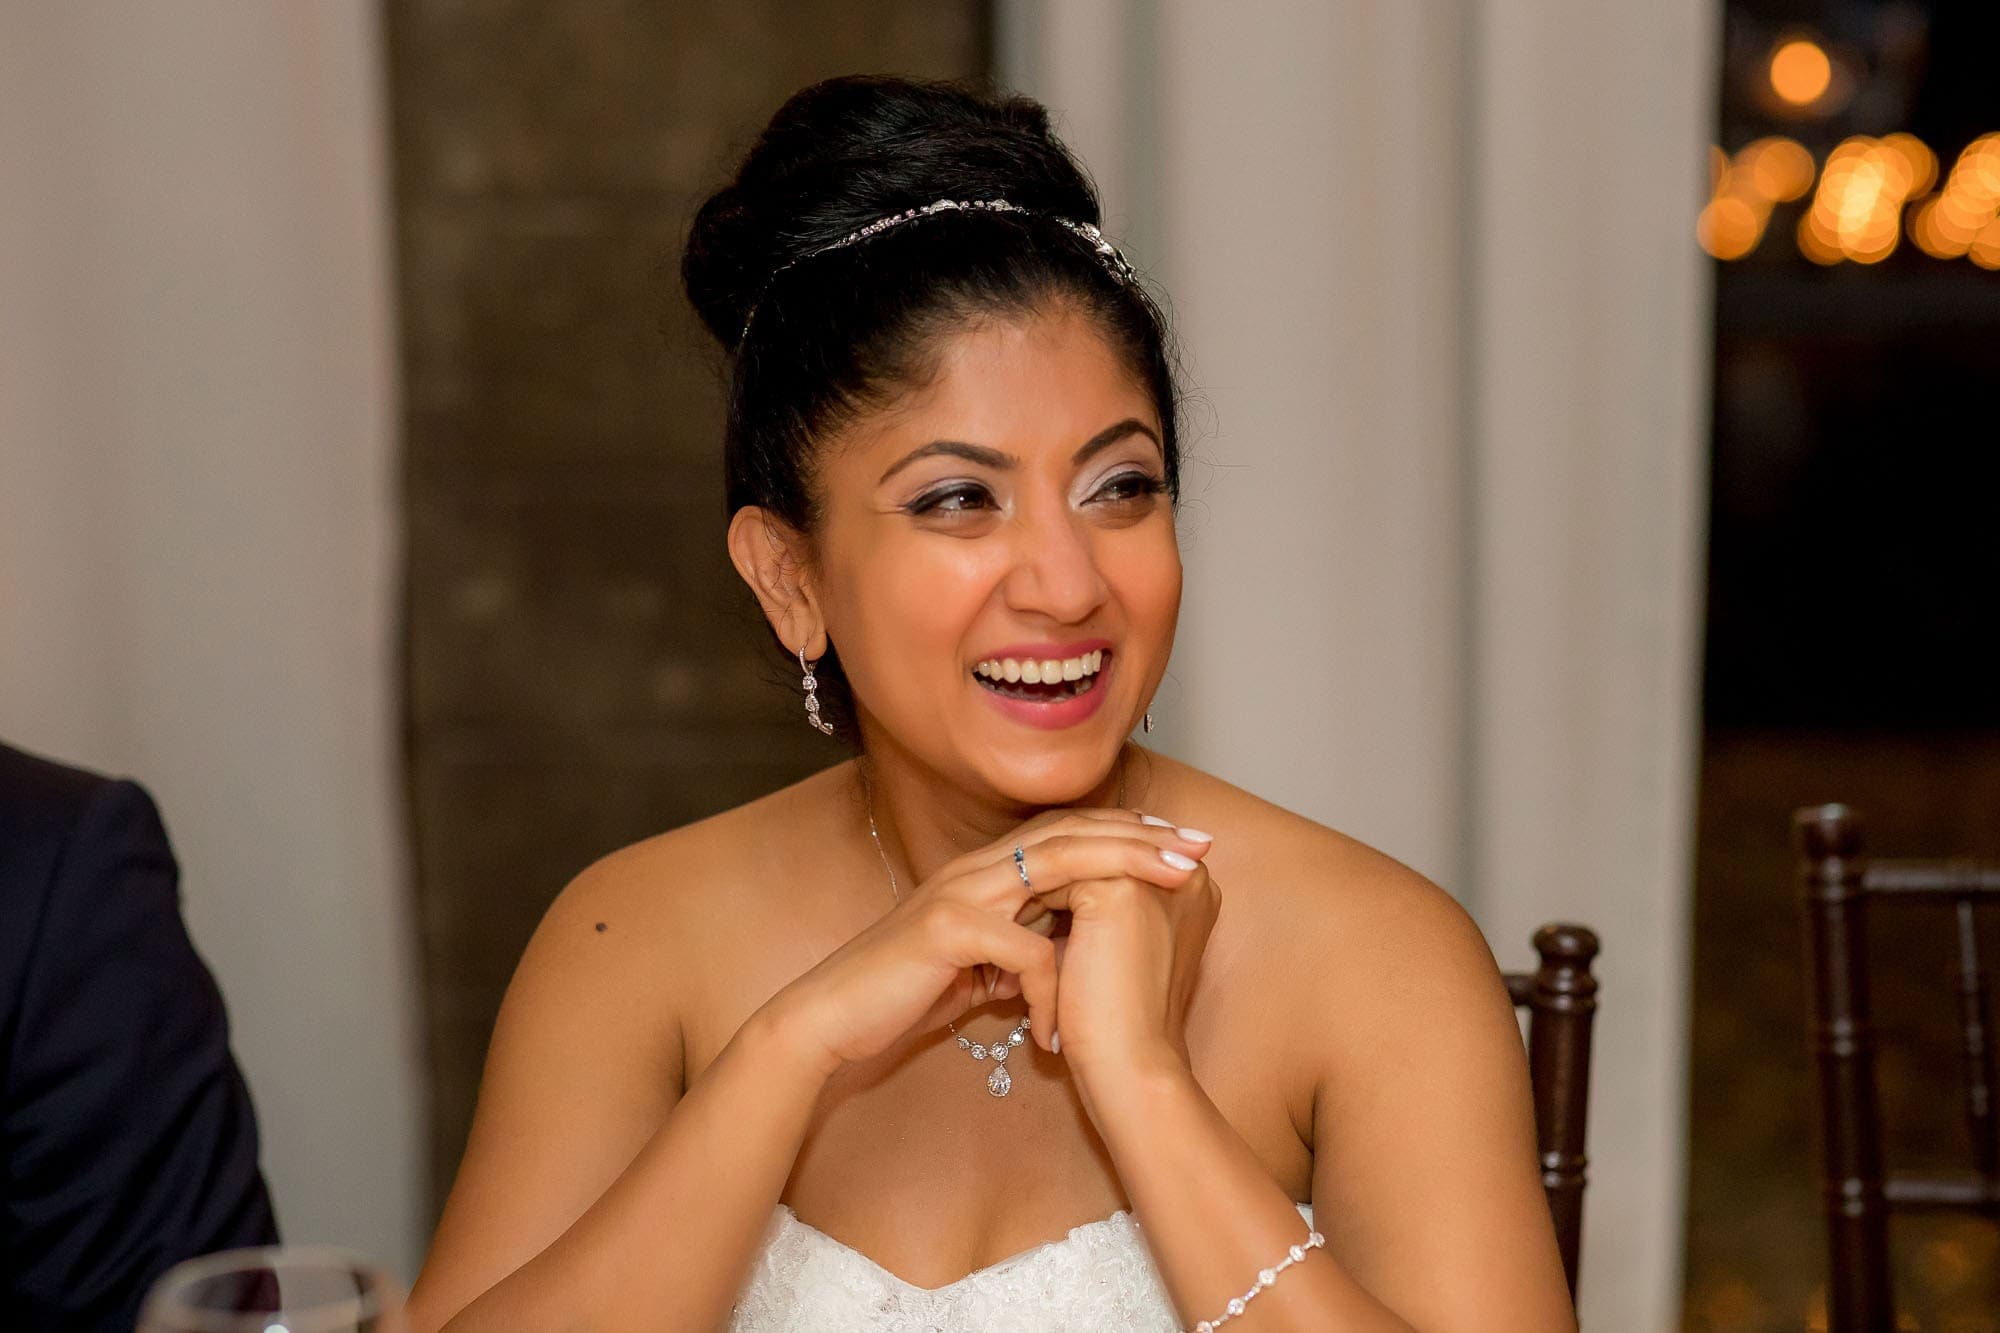 The bride smiling during the reception